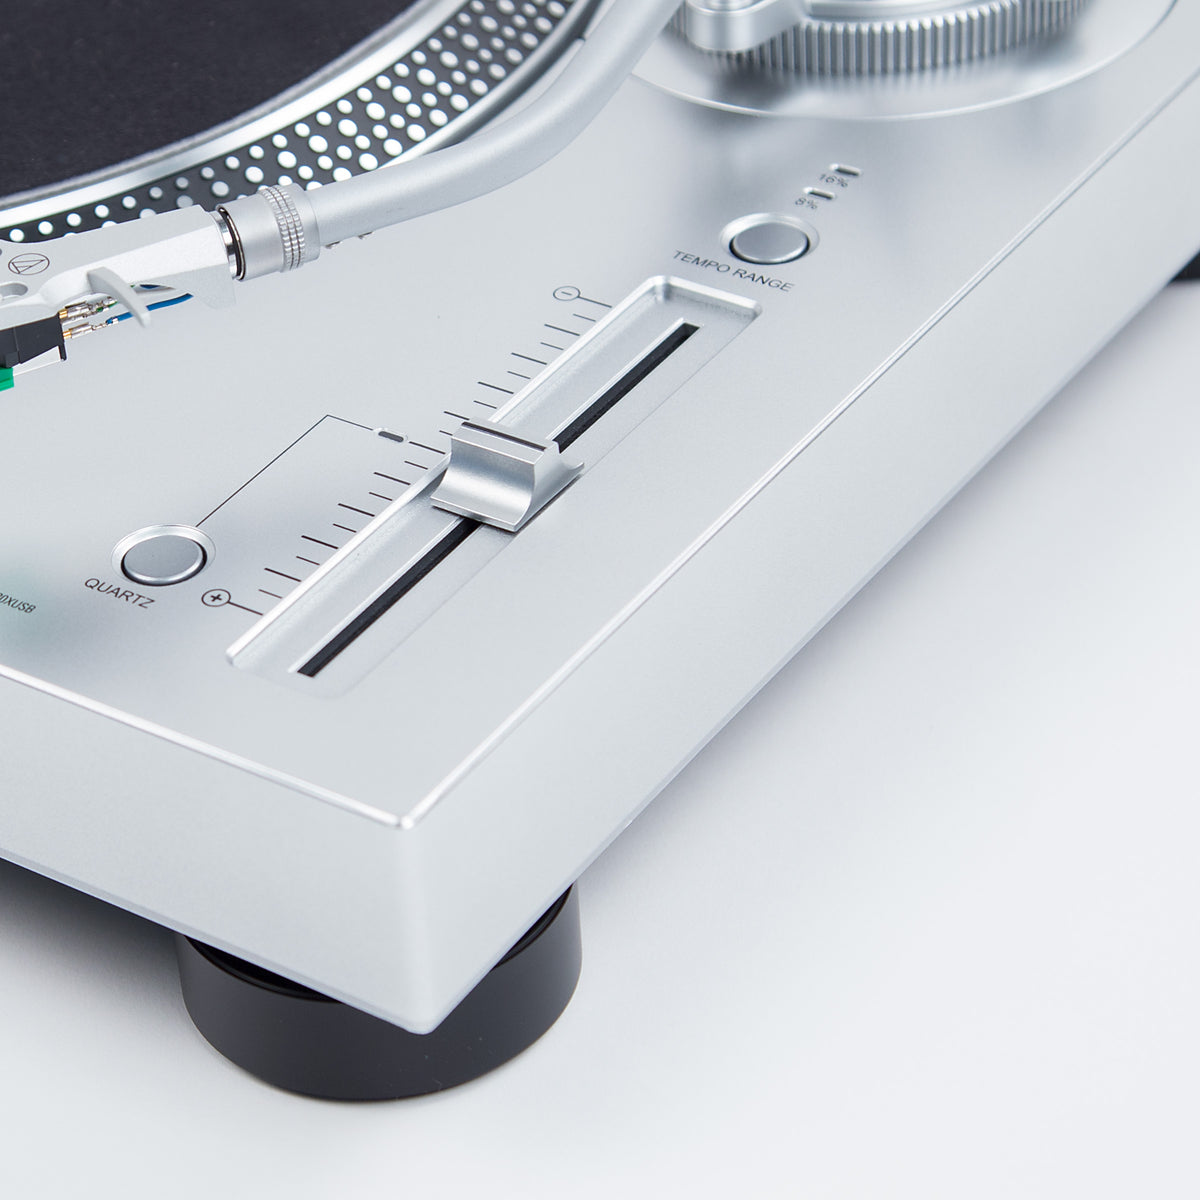 Audio Technica: AT-LP120XUSB-SV Direct Drive Turntable - Silver